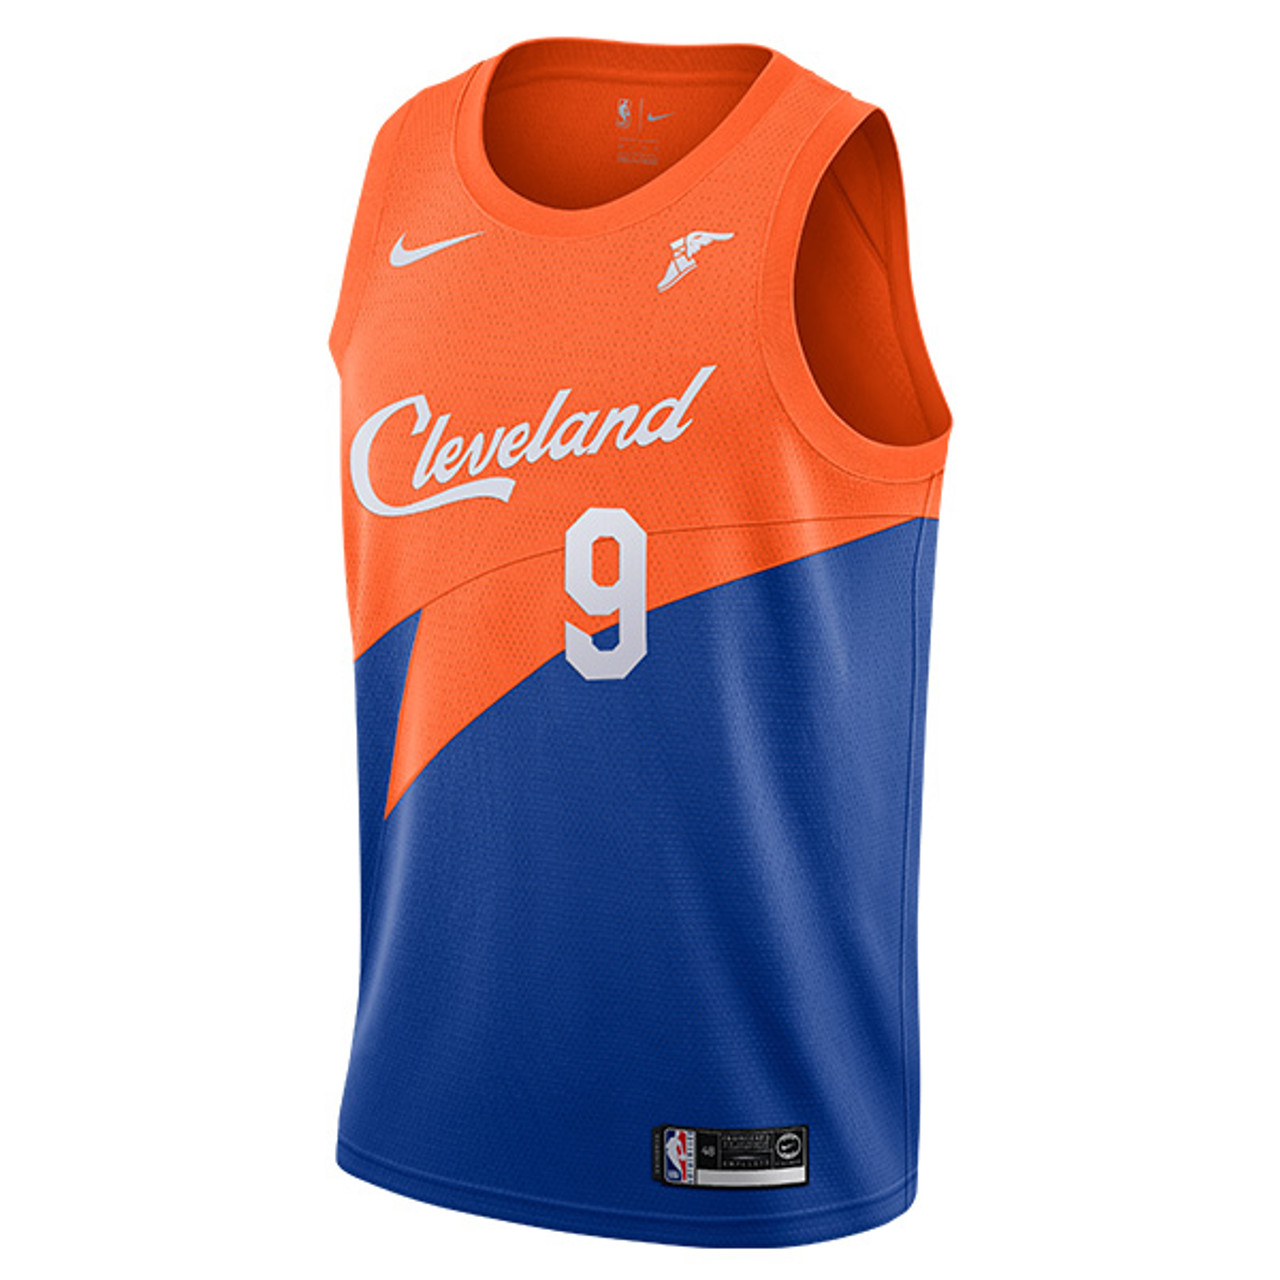 9 Channing Frye City Edition Jersey with Goodyear Wingfoot in Blue   Orange 203d0b35a